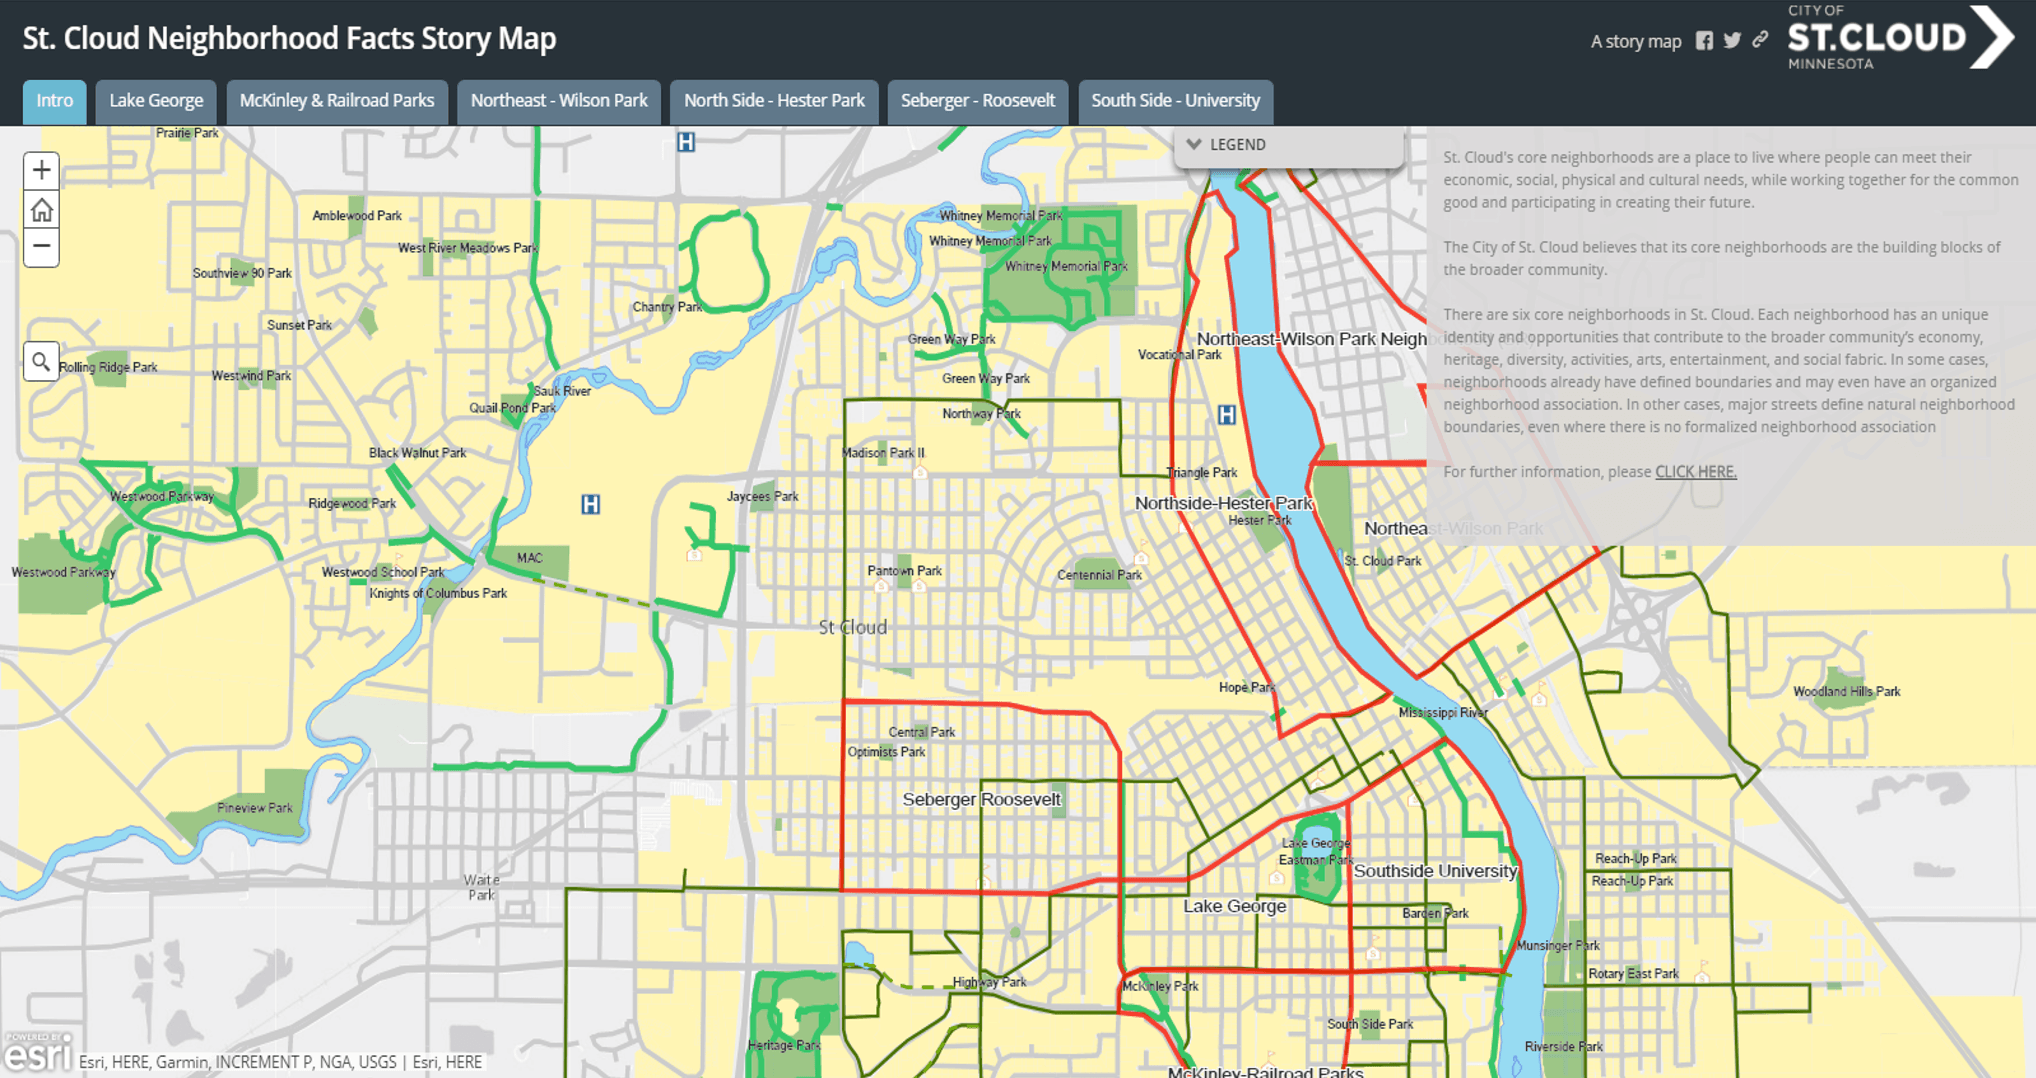 Neighborhood Facts Story Map